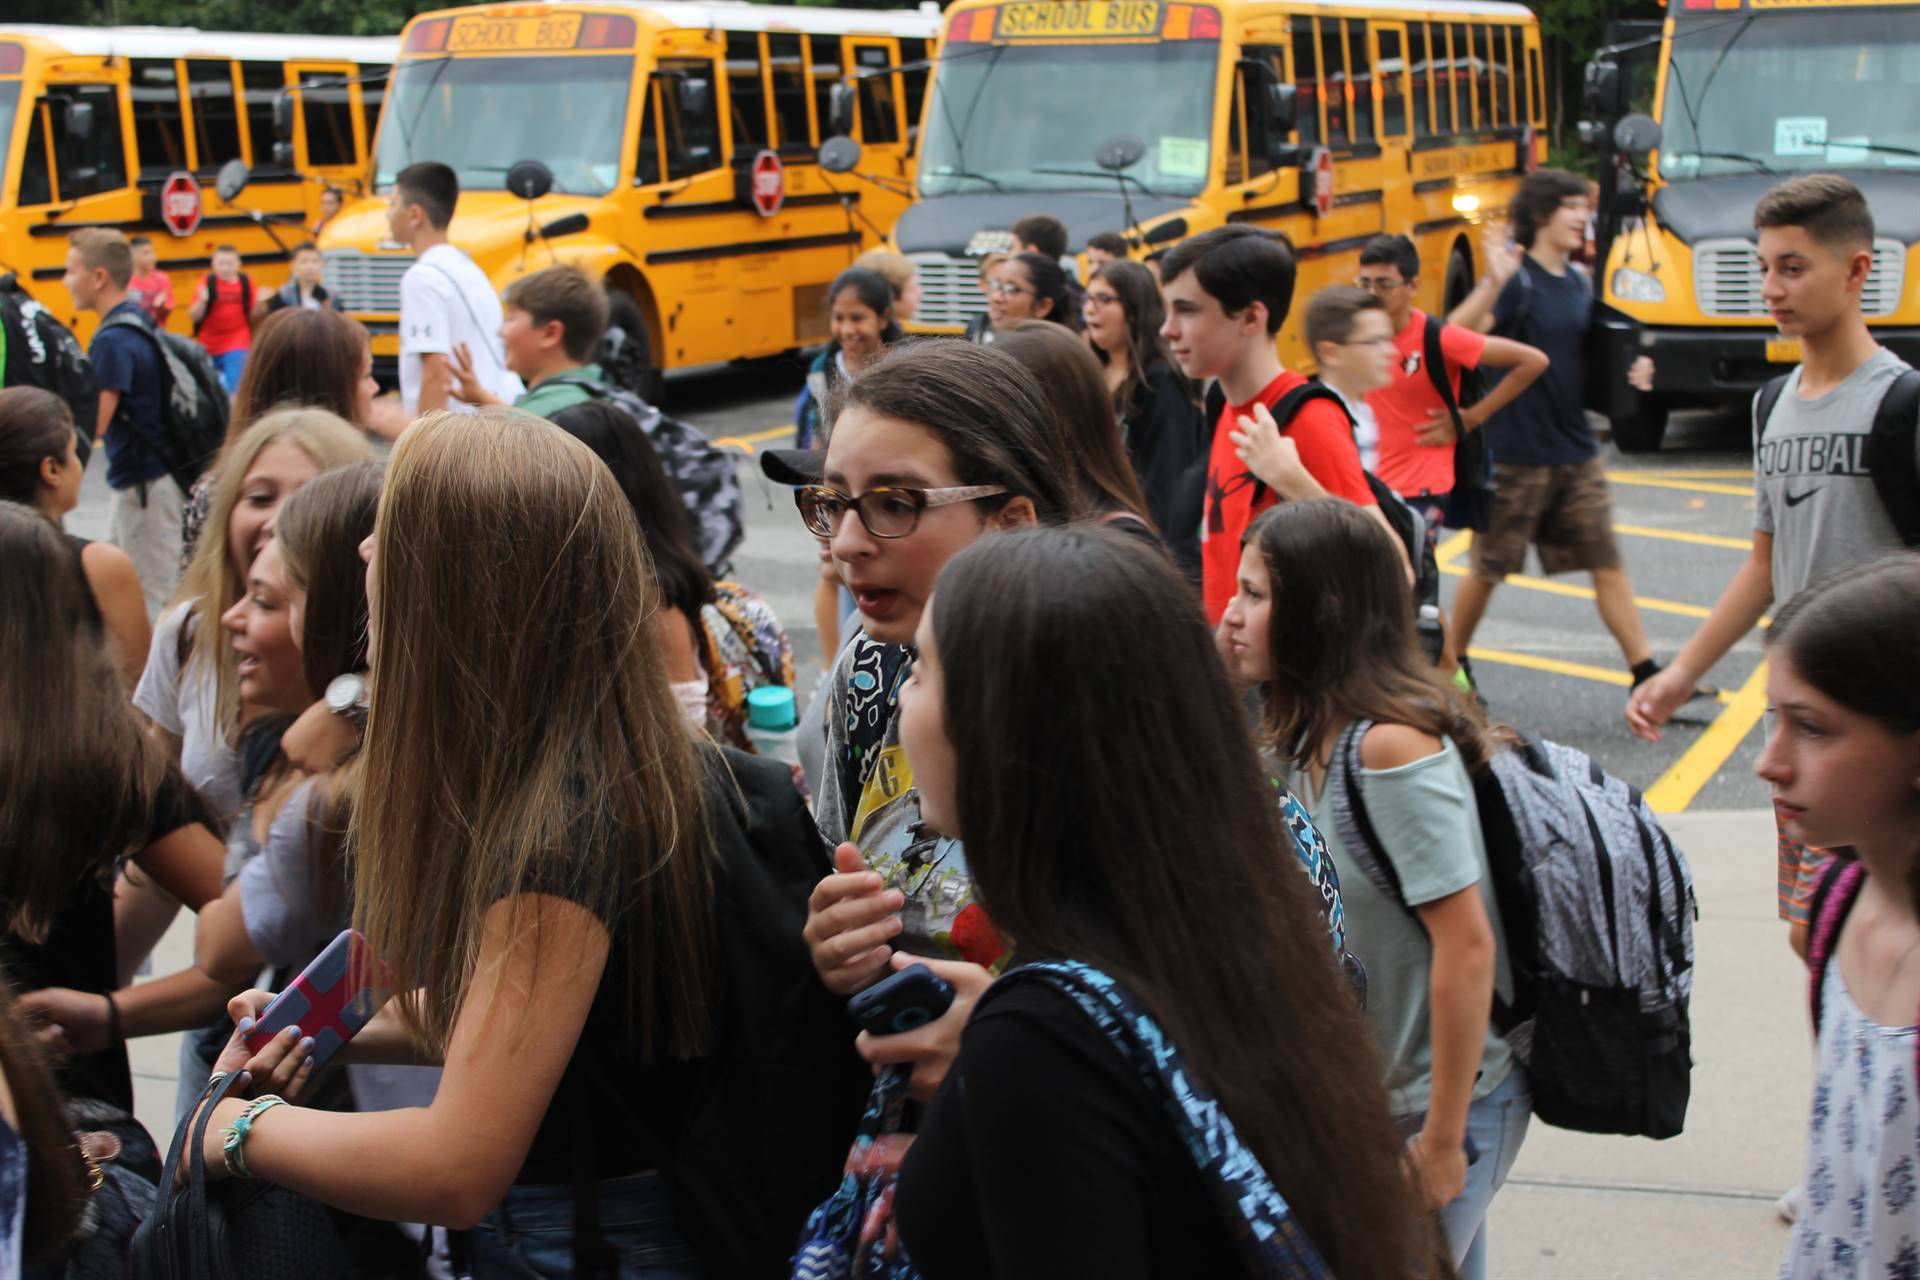 Students getting off school buses